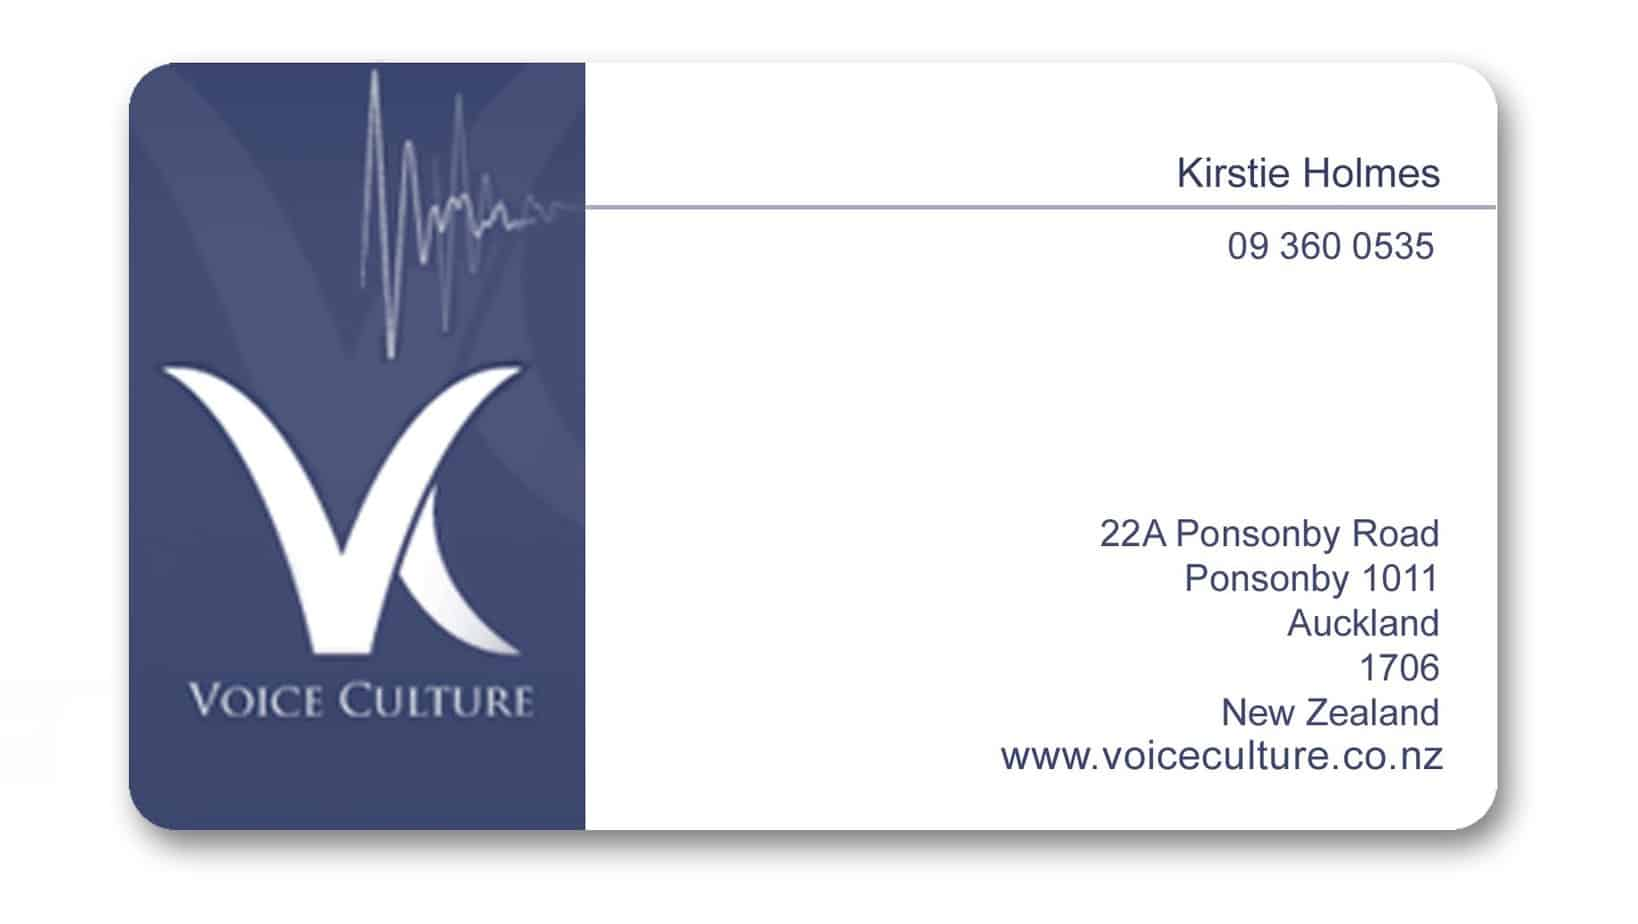 Visiting Card example 21.6541